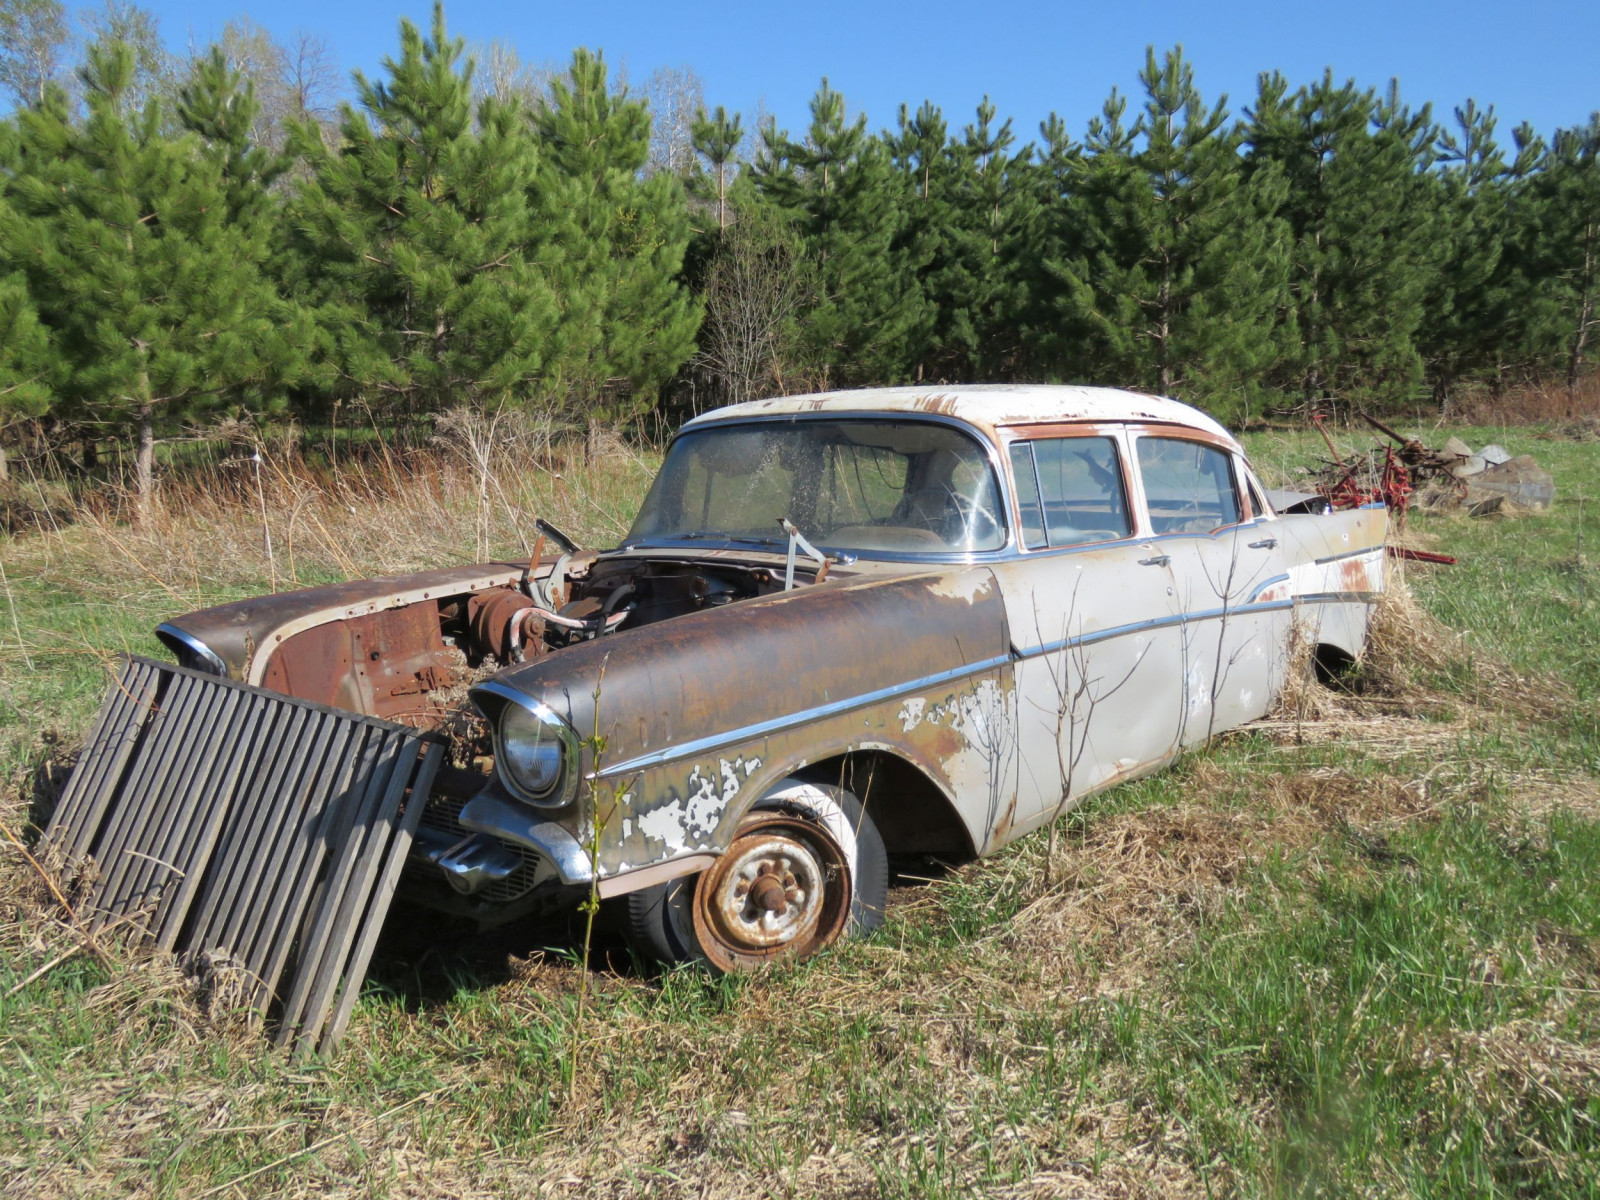 1957 Chevrolet 4dr Sedan parts only - Image 1